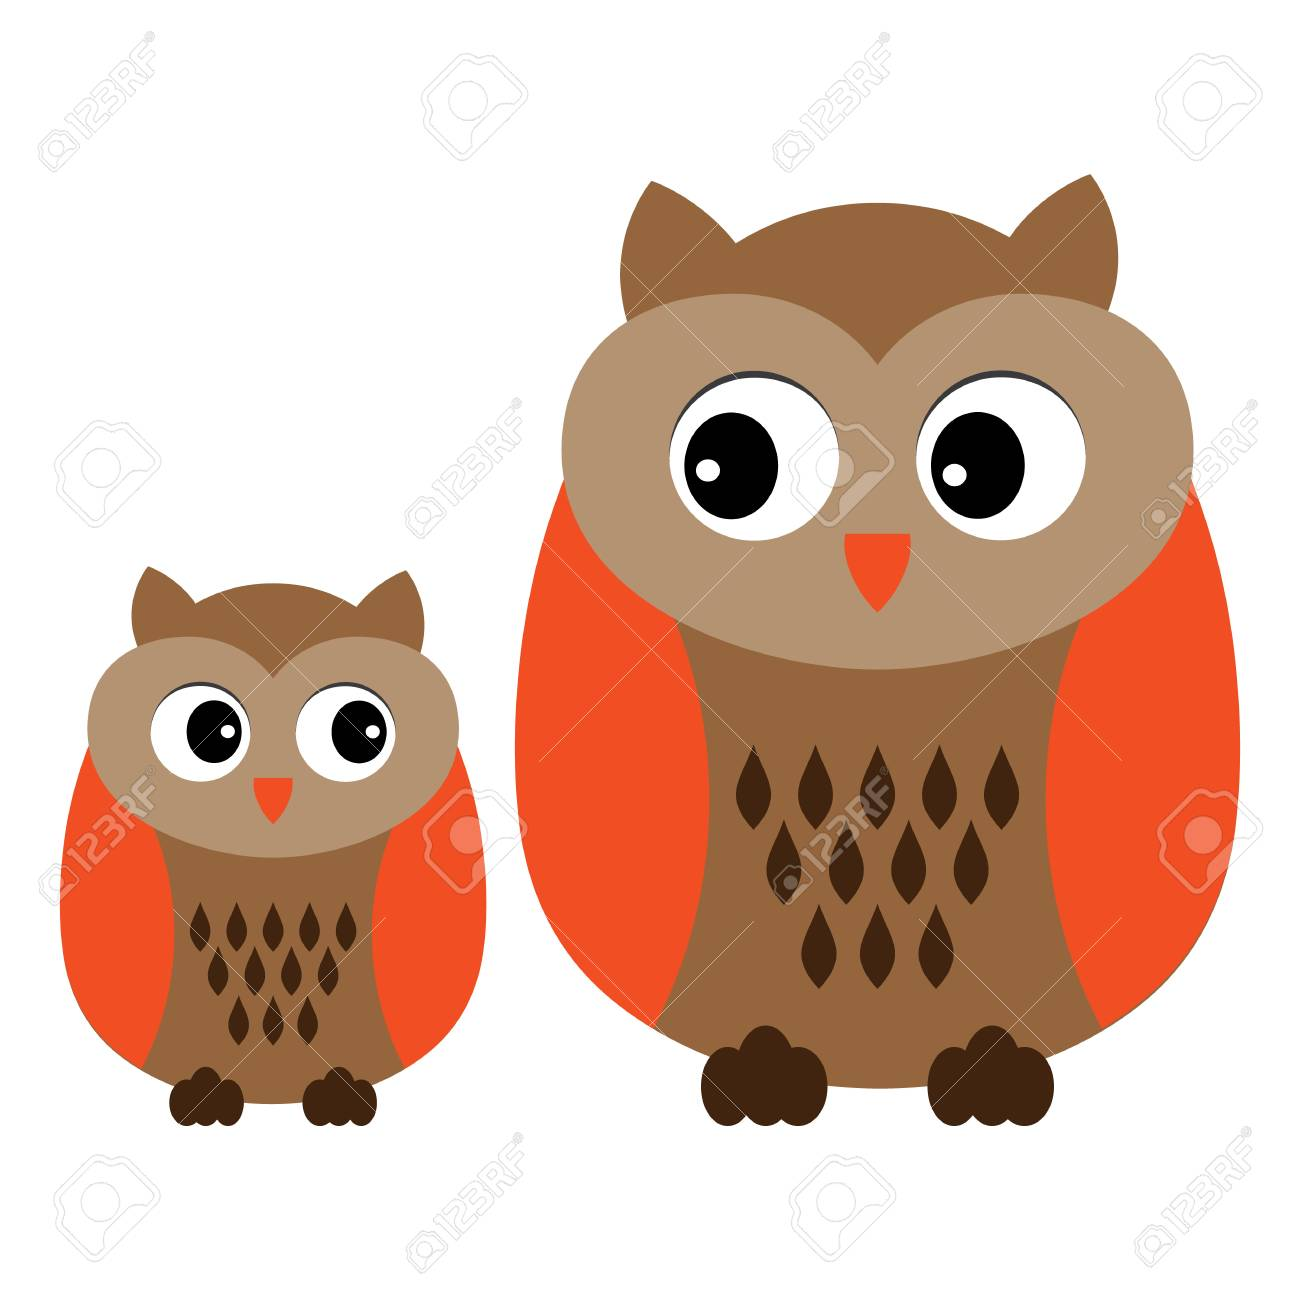 vector cute cartoon owls owls clipart baby owl vector illustration rh 123rf com  cute baby owl clip art free